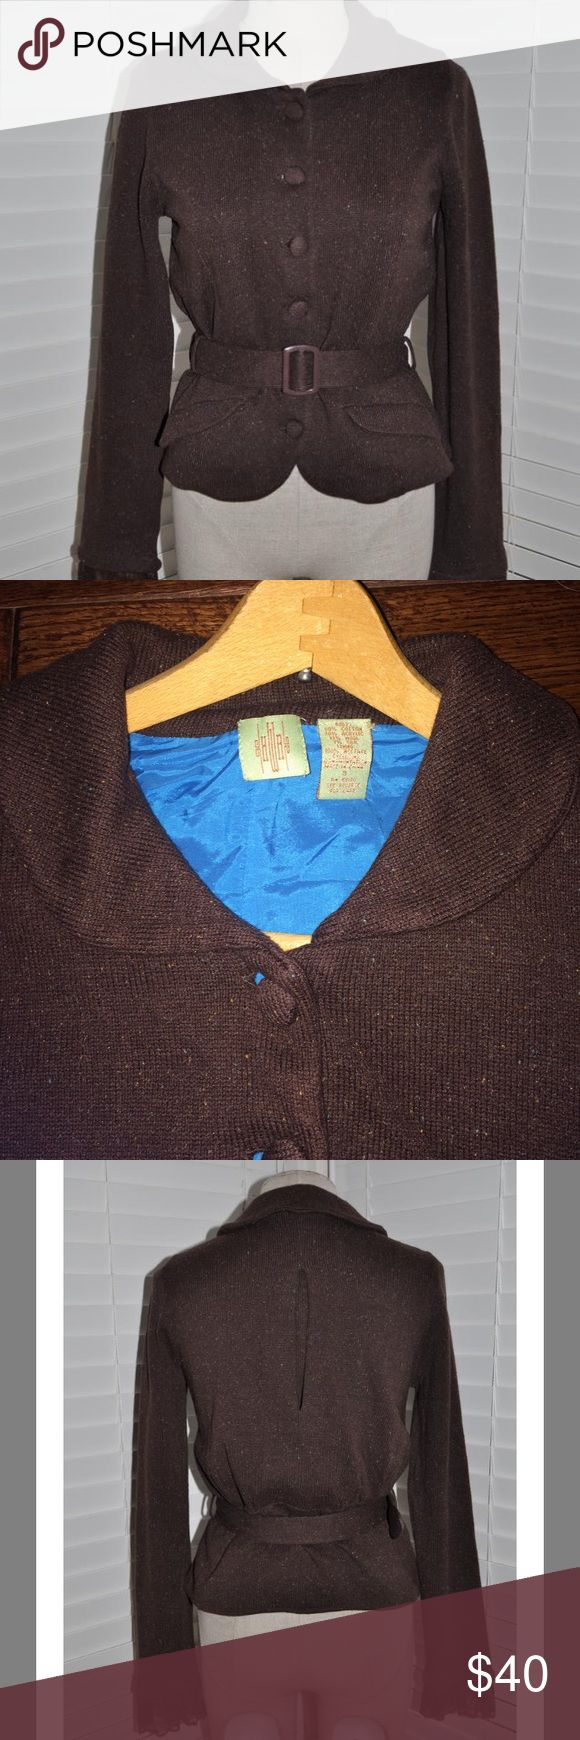 Anthropologie HWR Tweed Occidental Jacket Cardigan By Monogram from Anthropologie. This chocolate tweed jacket exudes feminine grace.  Lace cuffs, and an inverted back pleat to contour the waist. Silky turquoise blue lining. Removable Belt is adjustable. Two shallow front pockets. Cotton, Acrylic, wool, silk blend. Lining is 100% acetate. Dry clean. I believe this is Vintage Anthropologie, from 2005. I think i did wear it once, but it is in excellent condition. I can find no flaws…